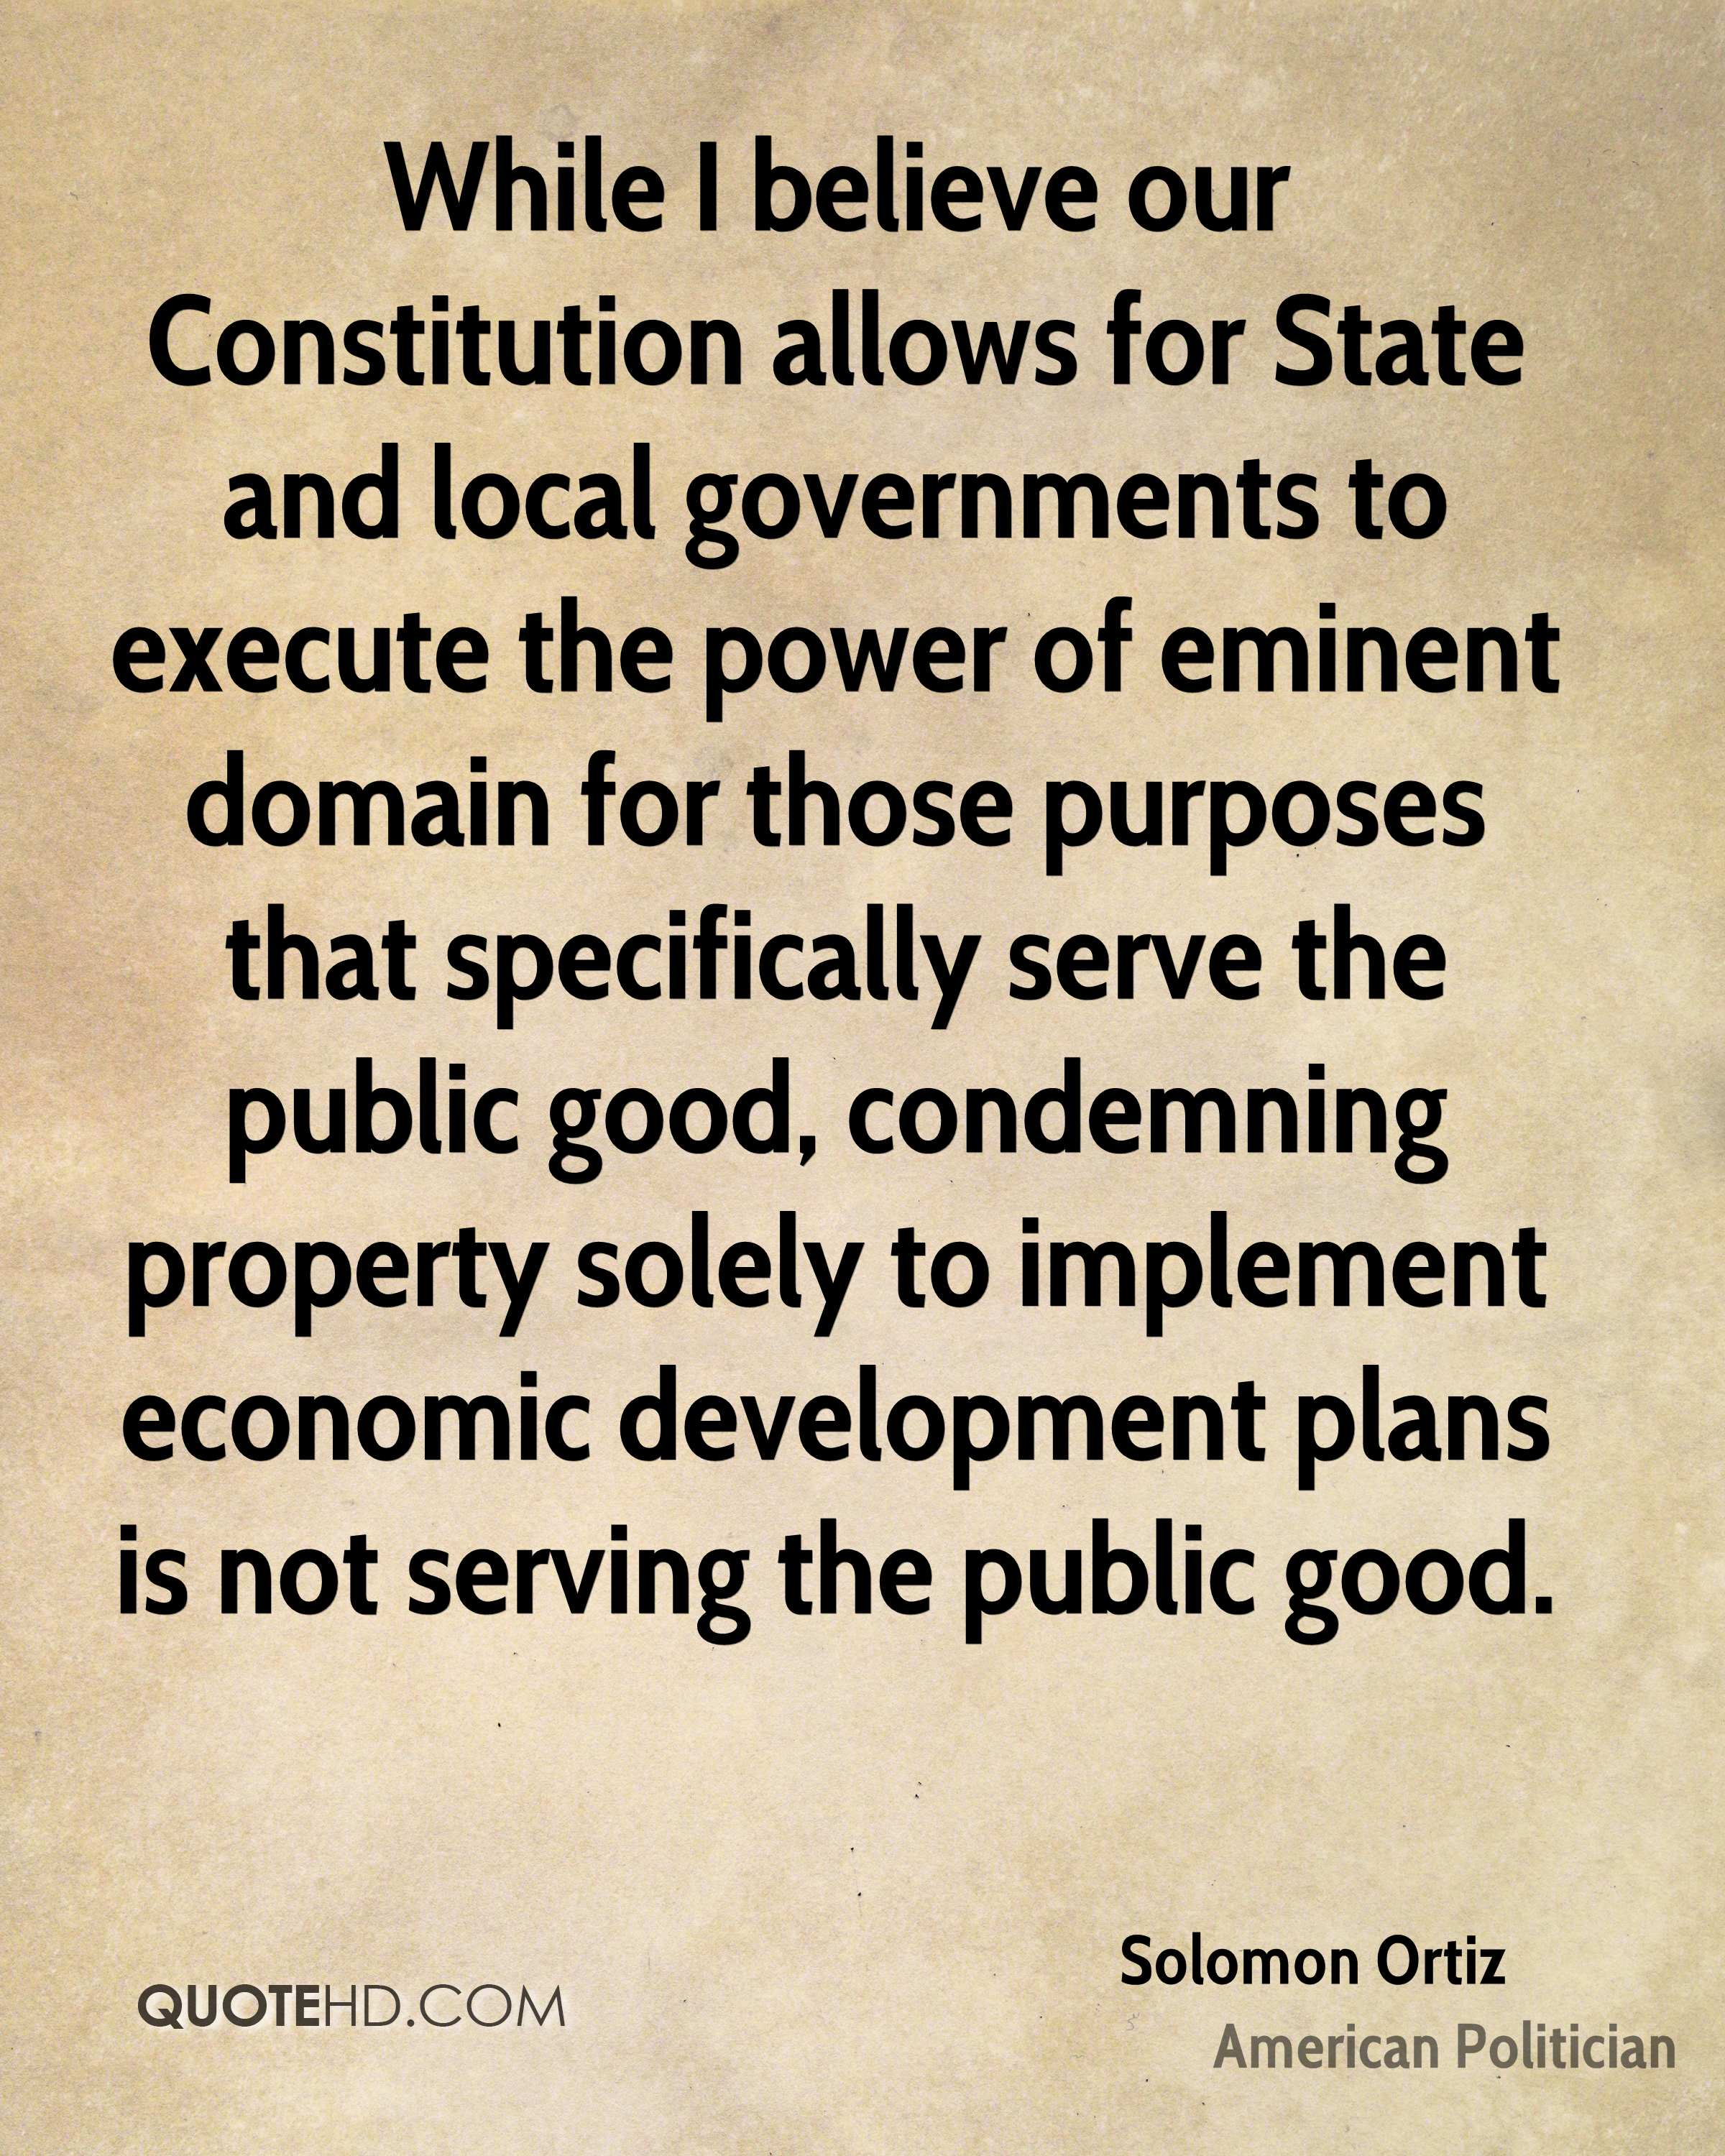 While I believe our Constitution allows for State and local governments to execute the power of eminent domain for those purposes that specifically serve the public good, condemning property solely to implement economic development plans is not serving the public good.